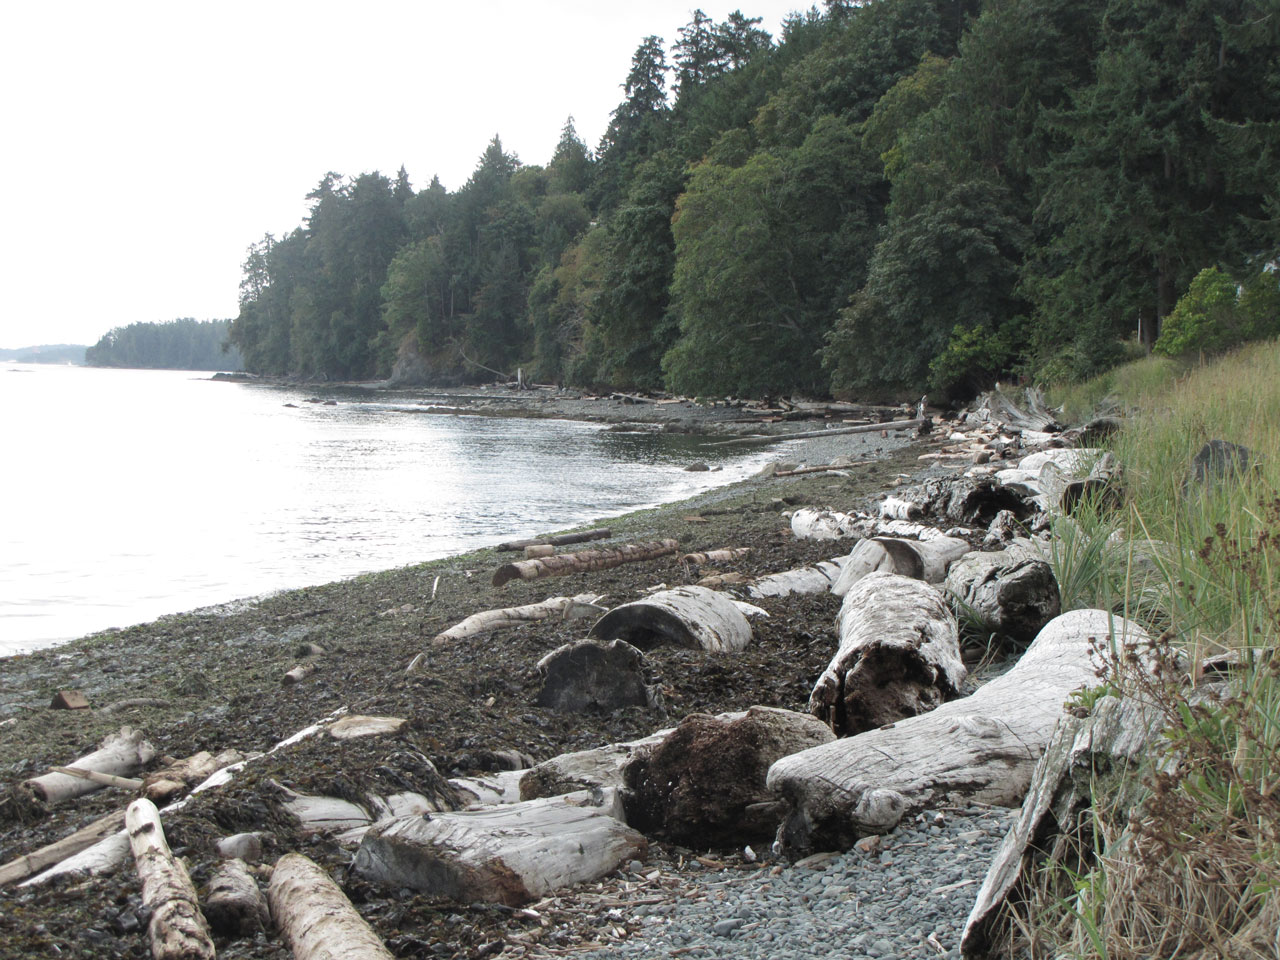 Rocky beach and washed up wood on West Coast beach Canada